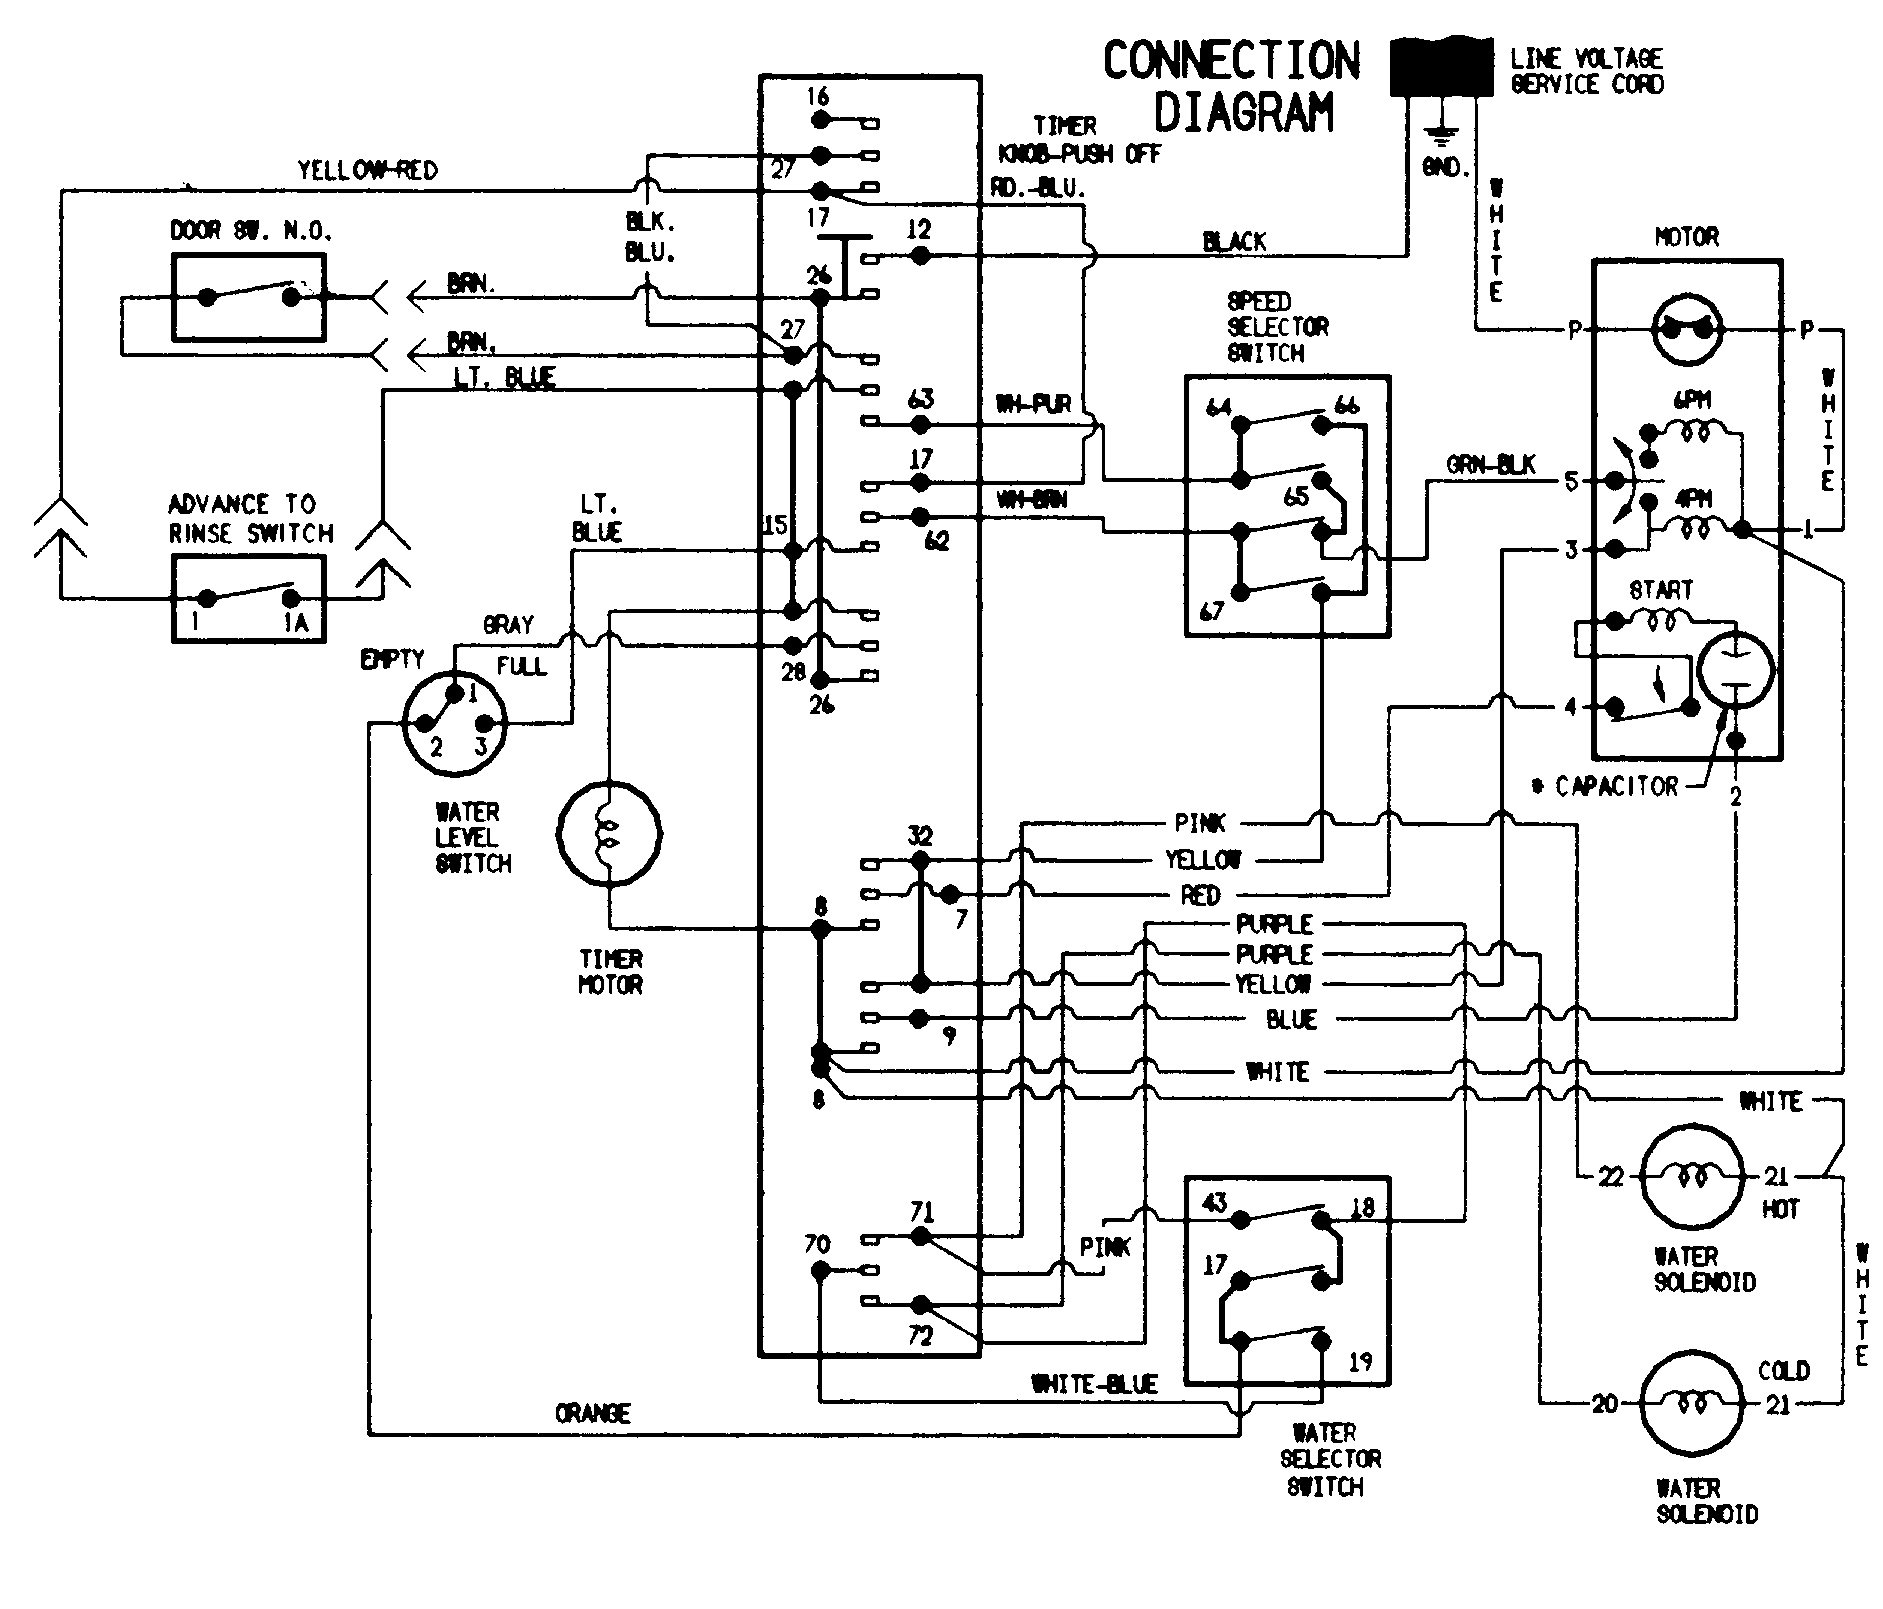 whirlpool dryer schematic wiring diagram | free wiring diagram whirlpool dryer wiring diagram 240 vac le5700xsno whirlpool dryer wiring diagram